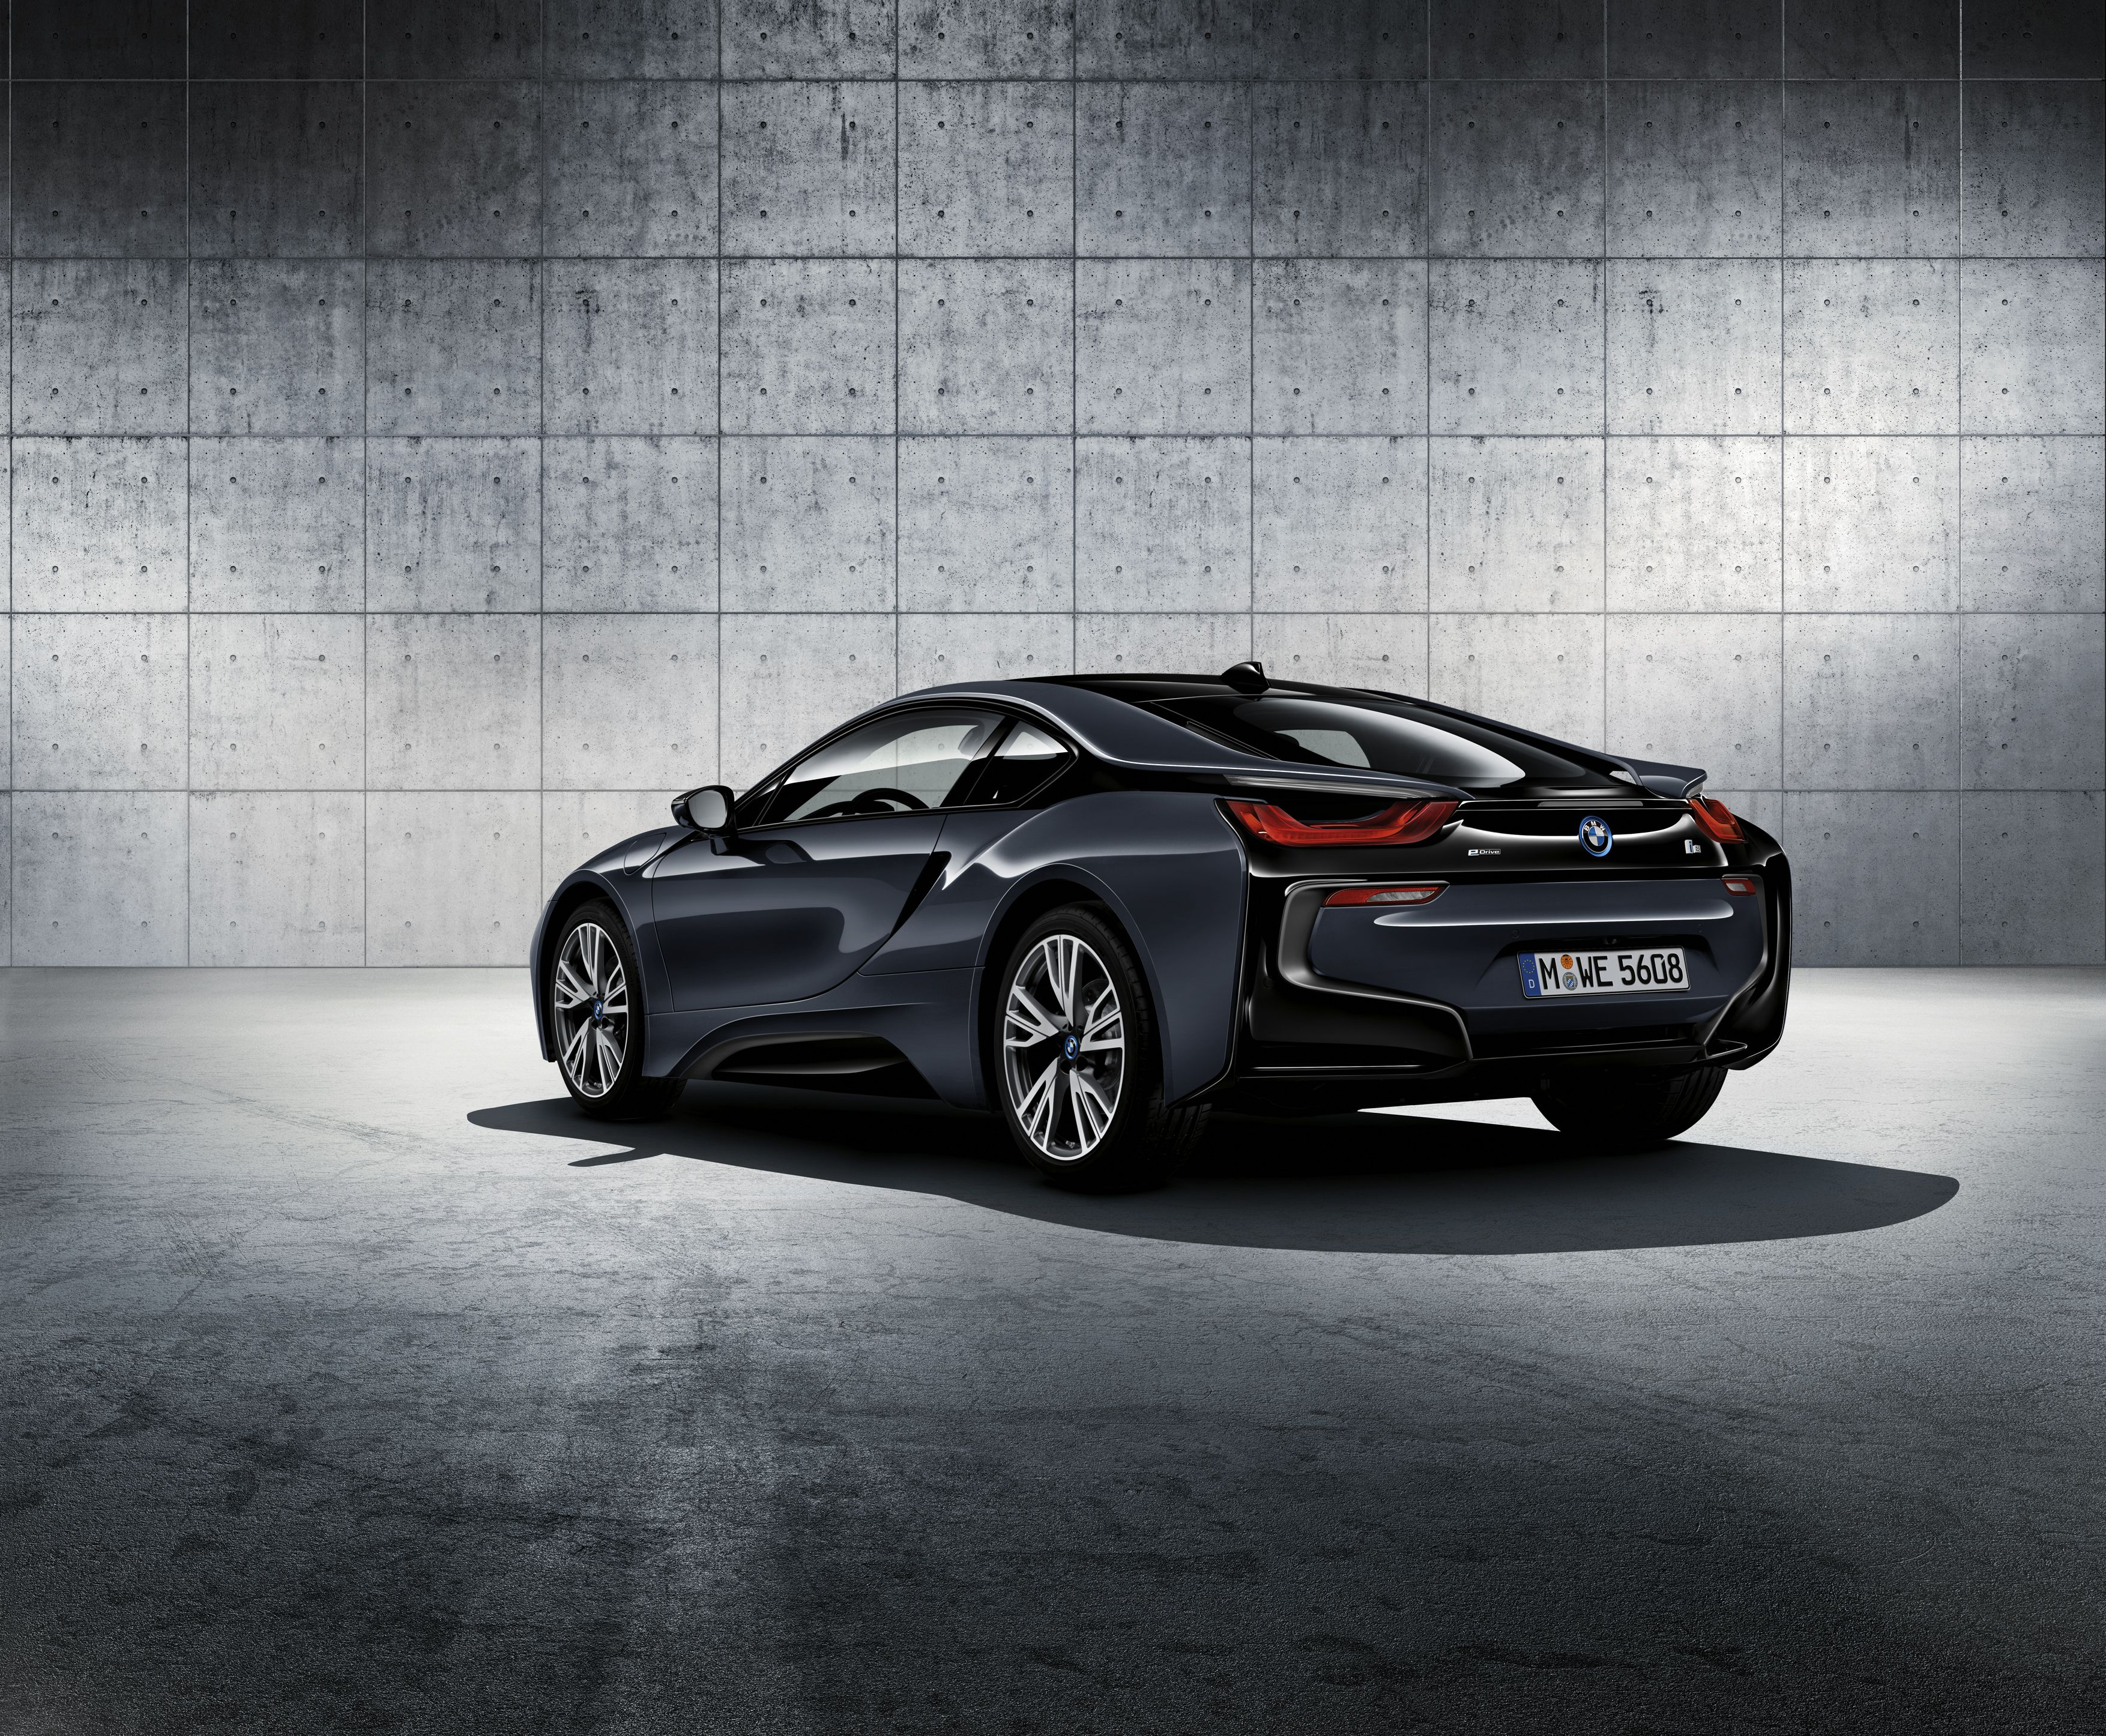 BMW I8 Coupe Protonic DarkSilverEdition Special Edition EDrive